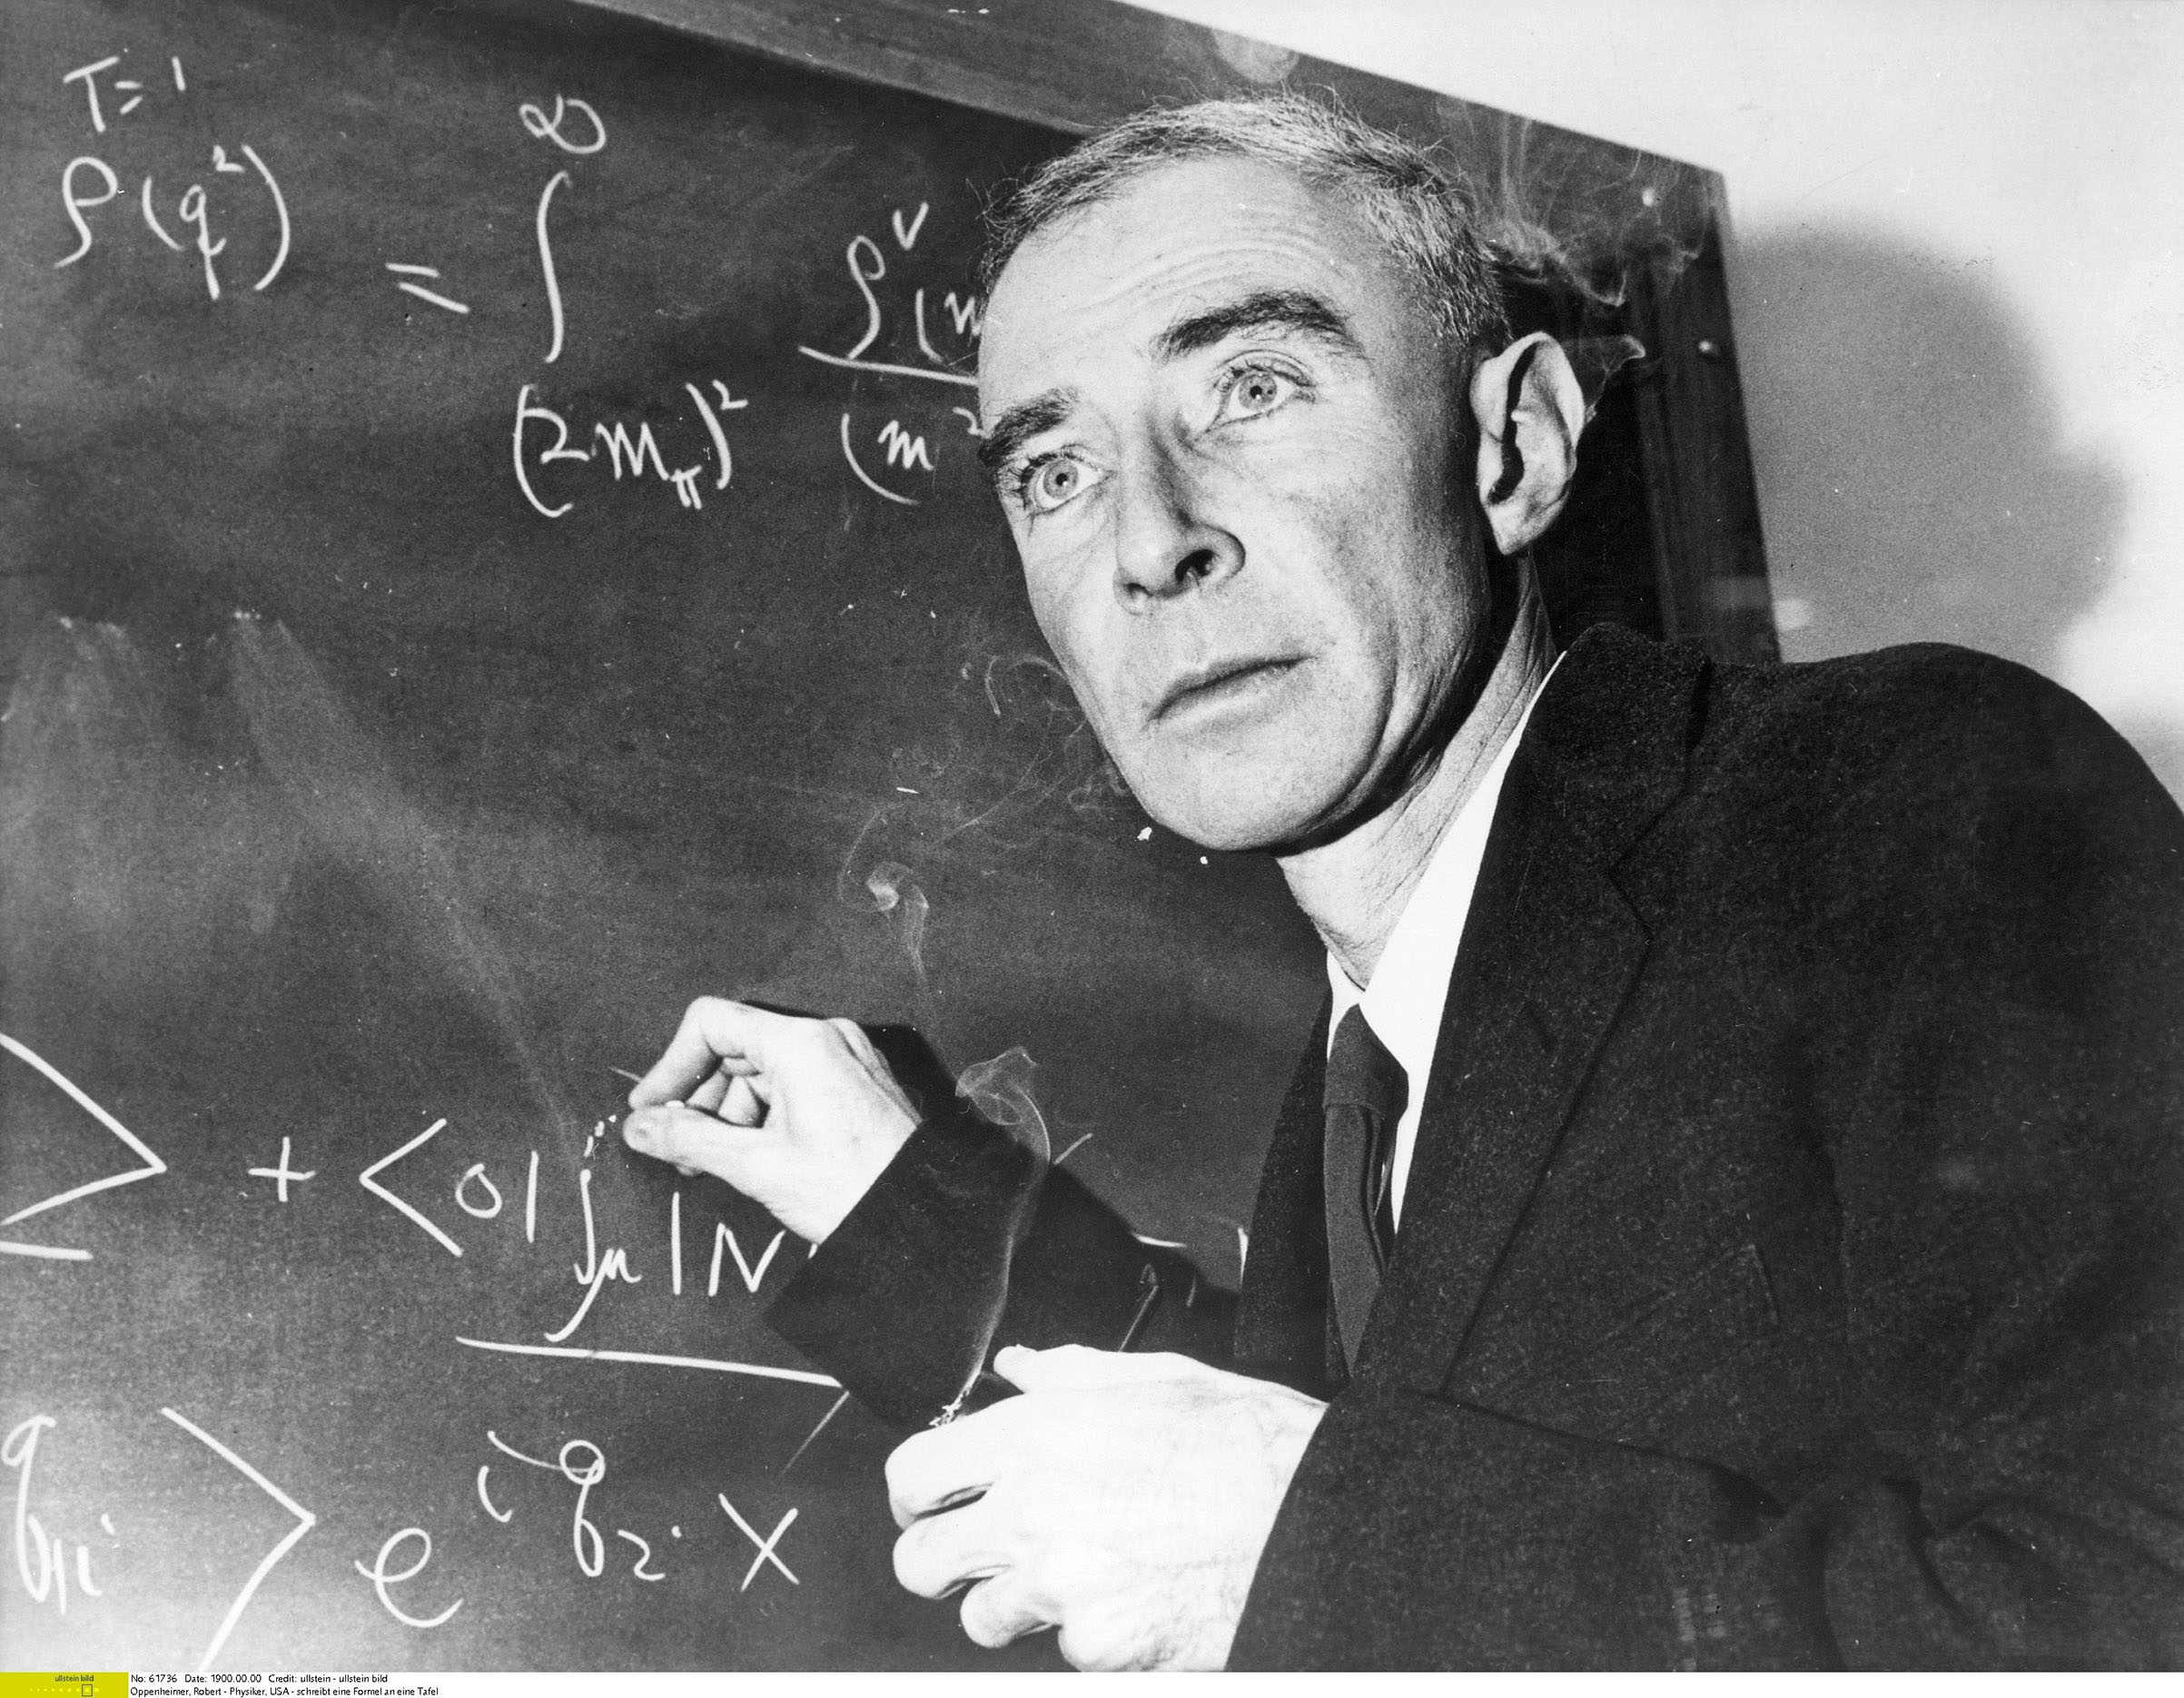 Oppenheimer never reconciled his political views with the future his work created